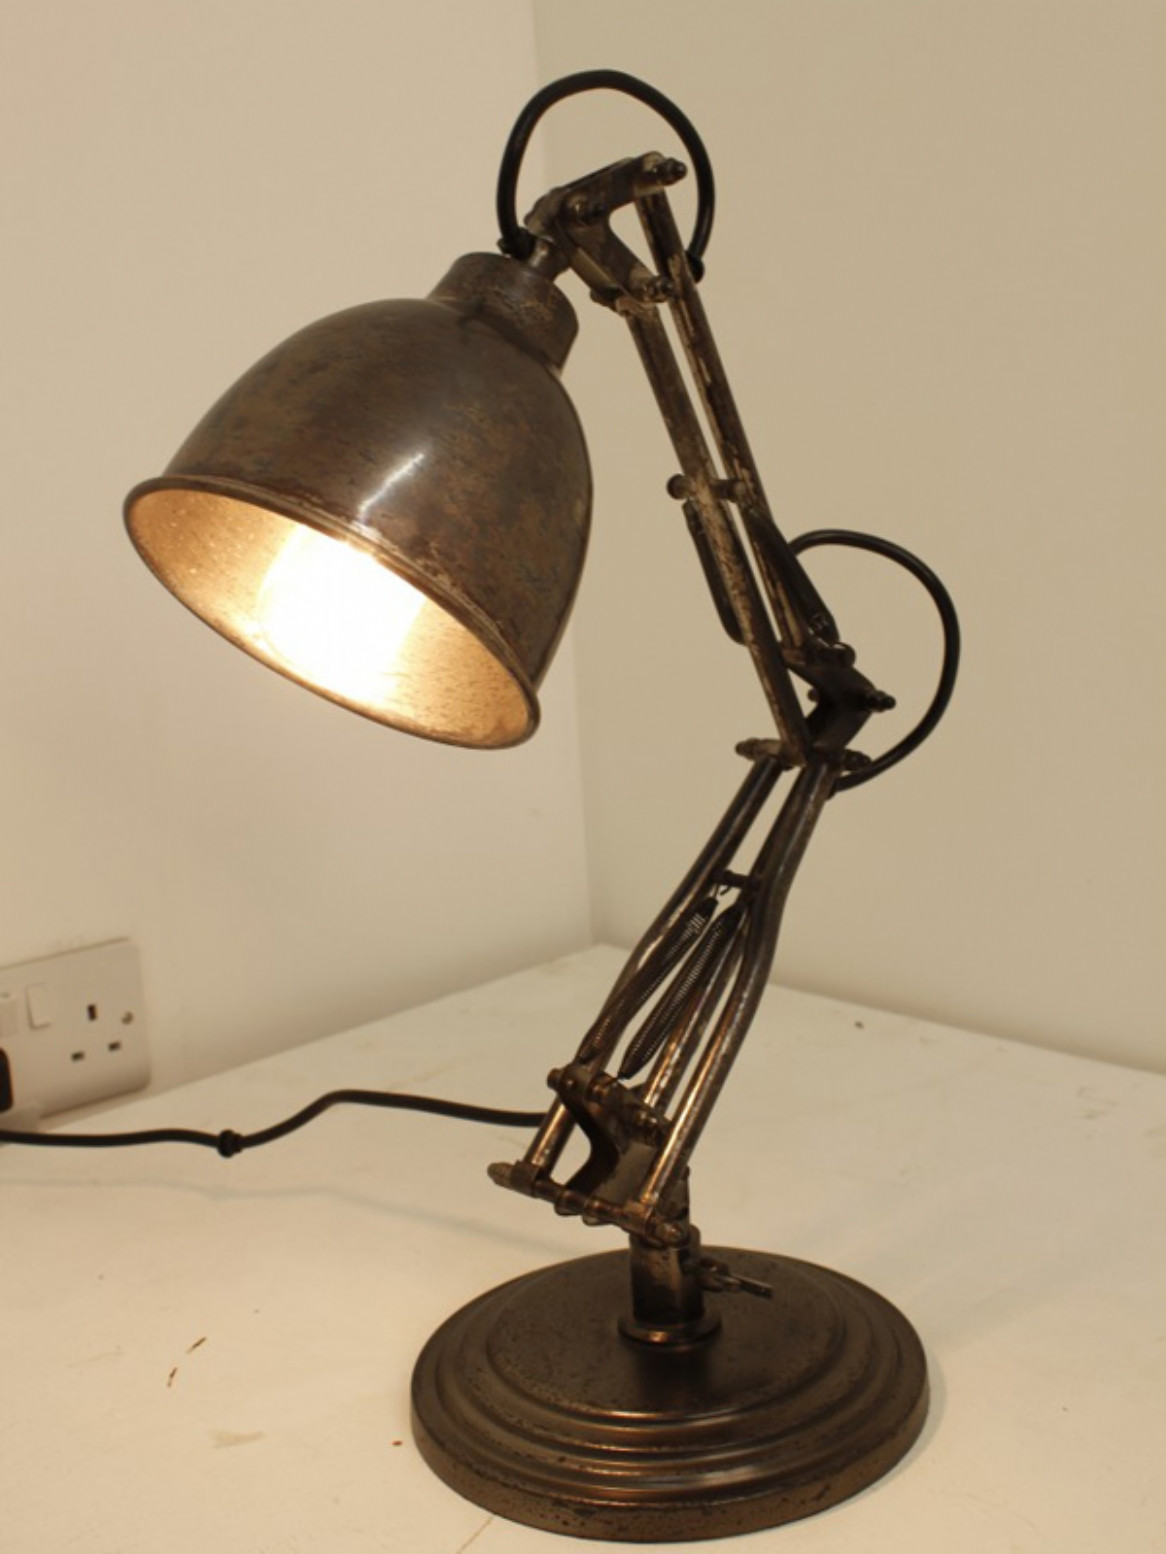 Best ideas about Industrial Desk Lamp . Save or Pin Industrial table lamp Now.